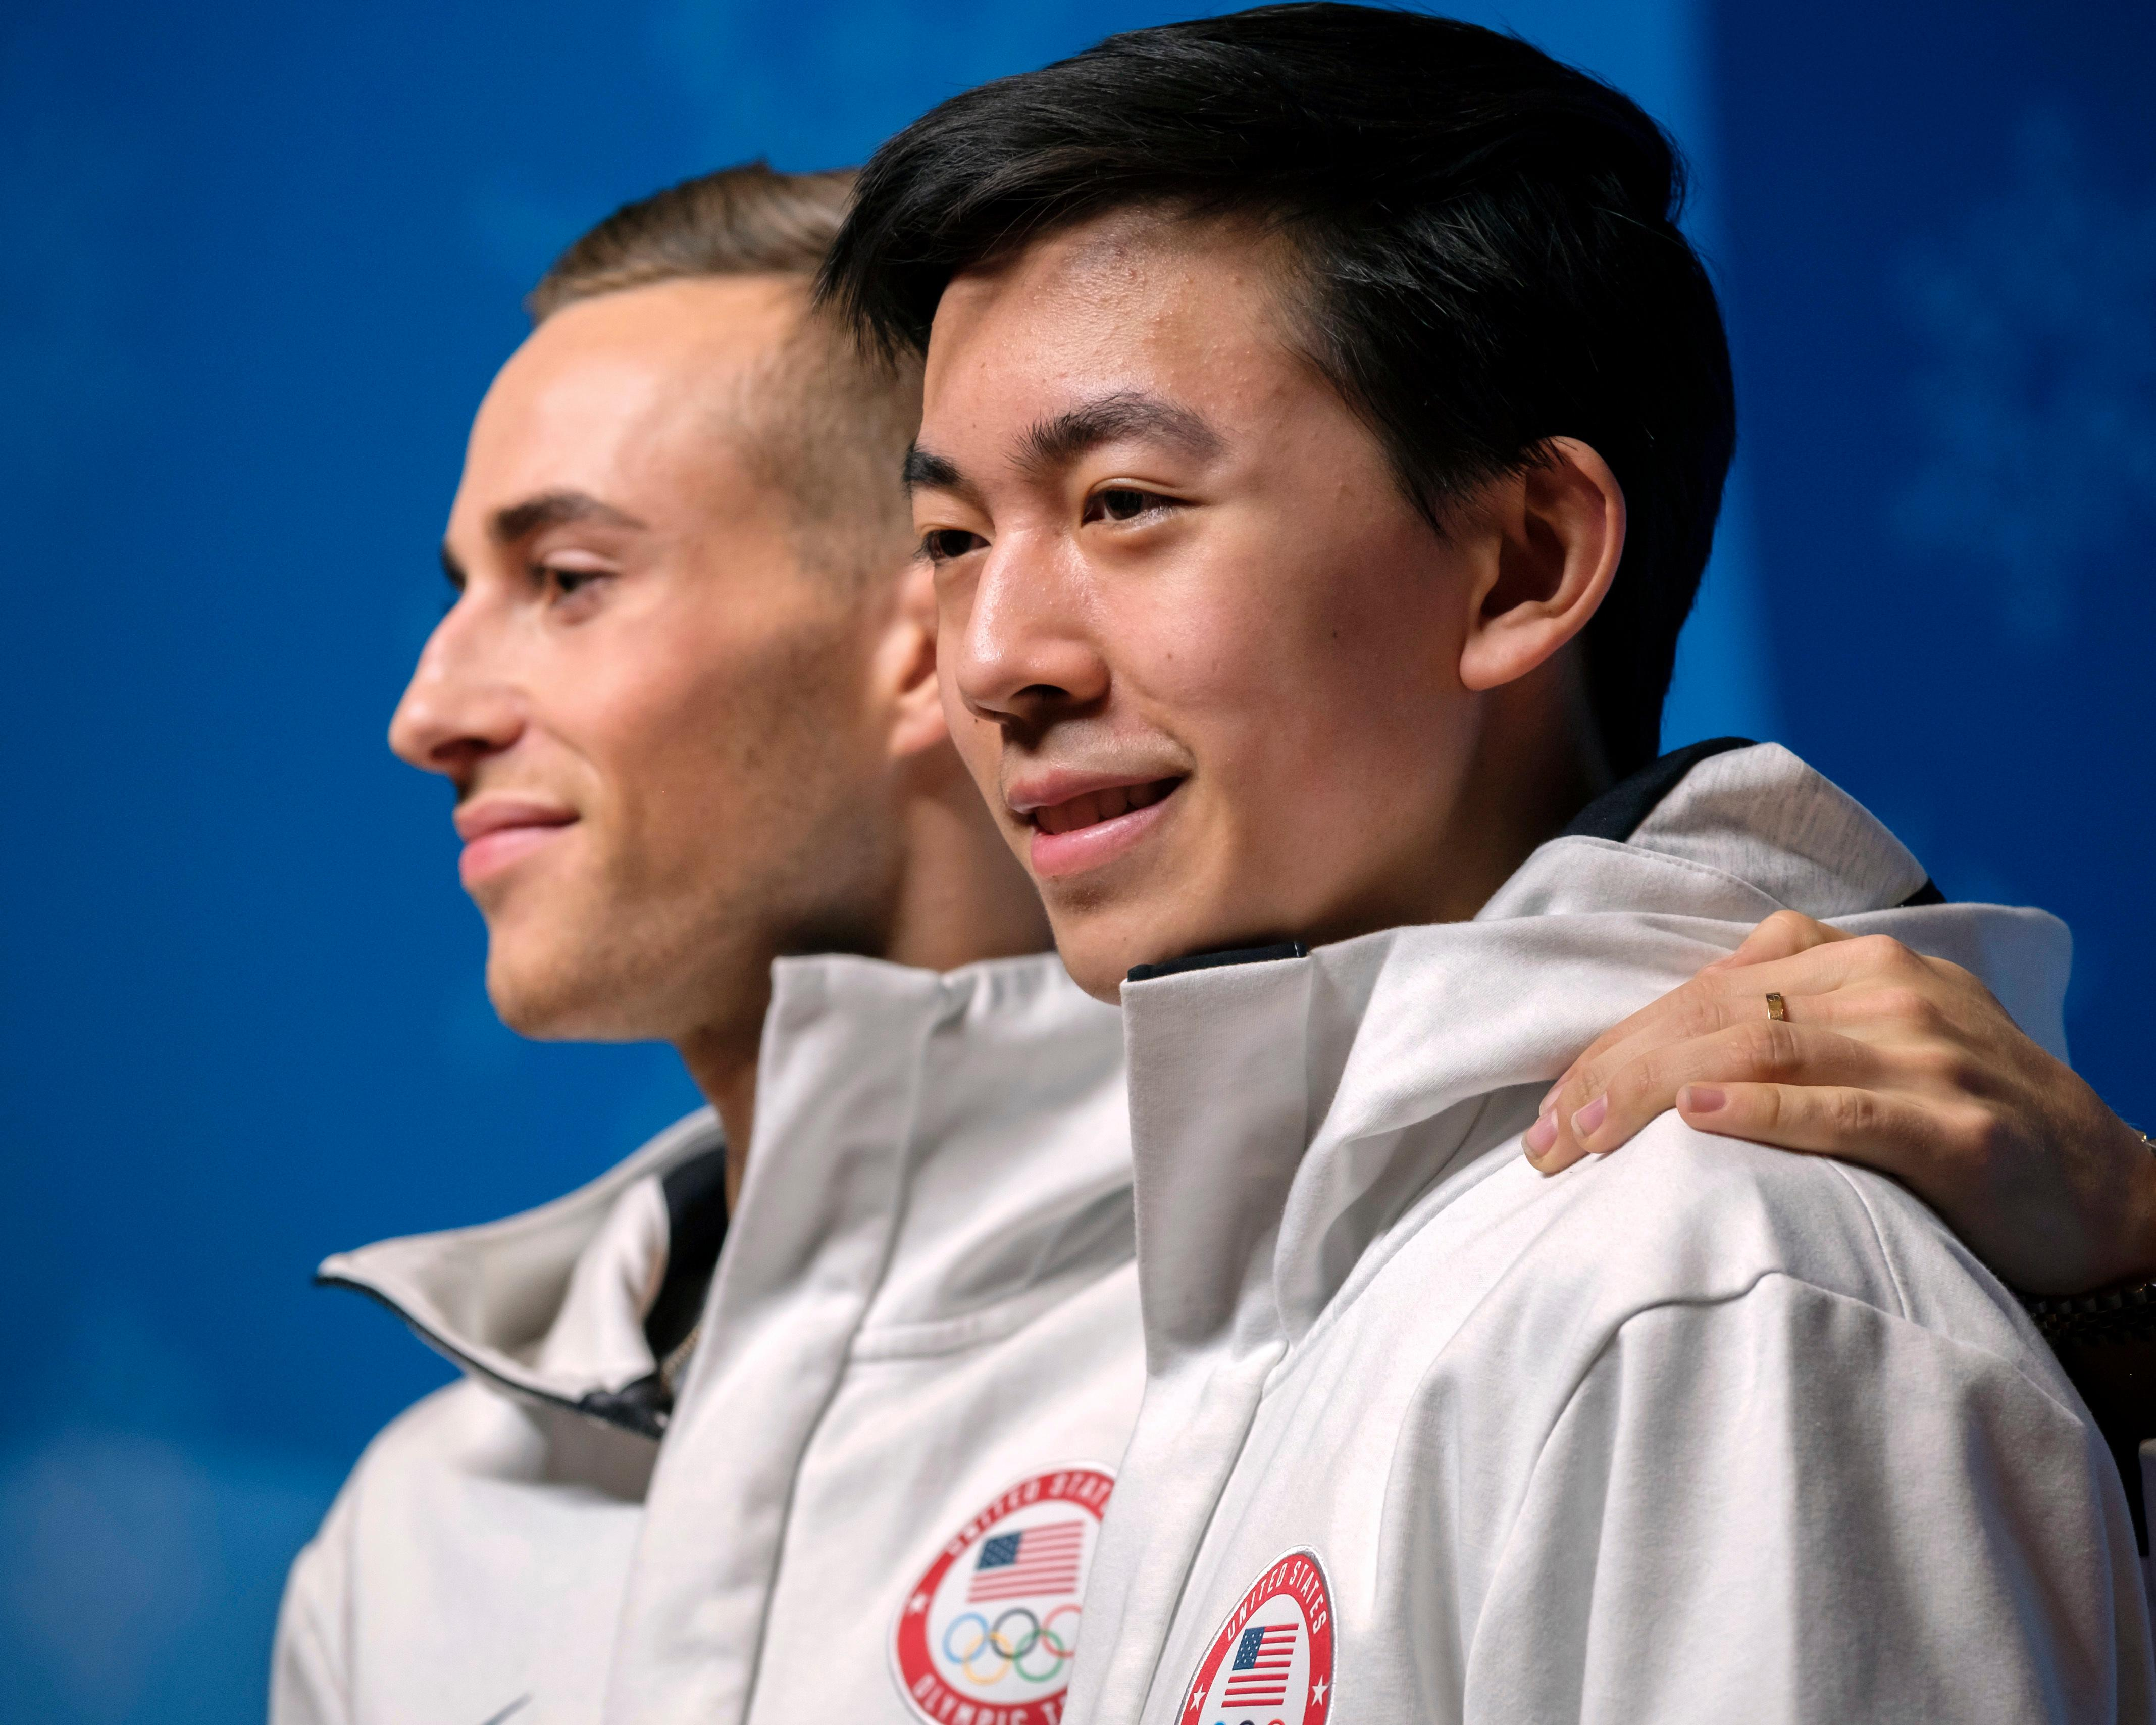 "In this Tuesday, Feb. 13, 2018 photo, United States figure skaters Adam Rippon, left, and Vincent Zhou pose for cameras after a press conference at the 2018 Winter Olympics in Pyeongchang, South Korea. Food is a big deal for Olympians. The U.S. team has its own chefs and dietitians, as well as two ""nutrition centers"" at the Winter Olympics. Zhou said he needs a lot of carbs, ""before, between and after sessions,"" to fend off fatigue. While Rippon said sheer abundance can be a danger for athletes.  (AP Photo/J. David Ake)"